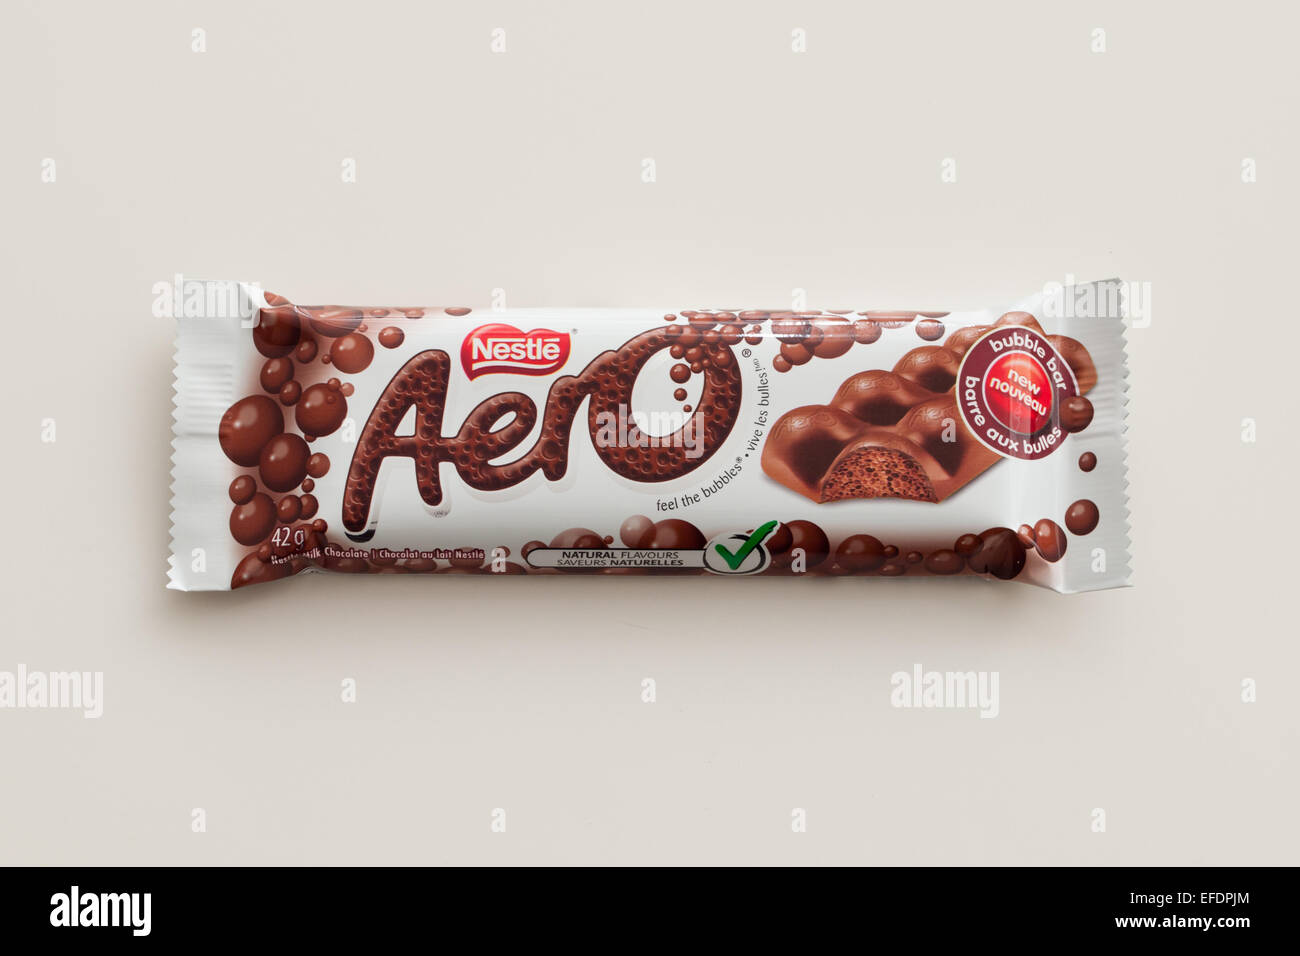 An Aero chocolate bar, produced by Nestlé.  Canadian packaging shown. Stock Photo